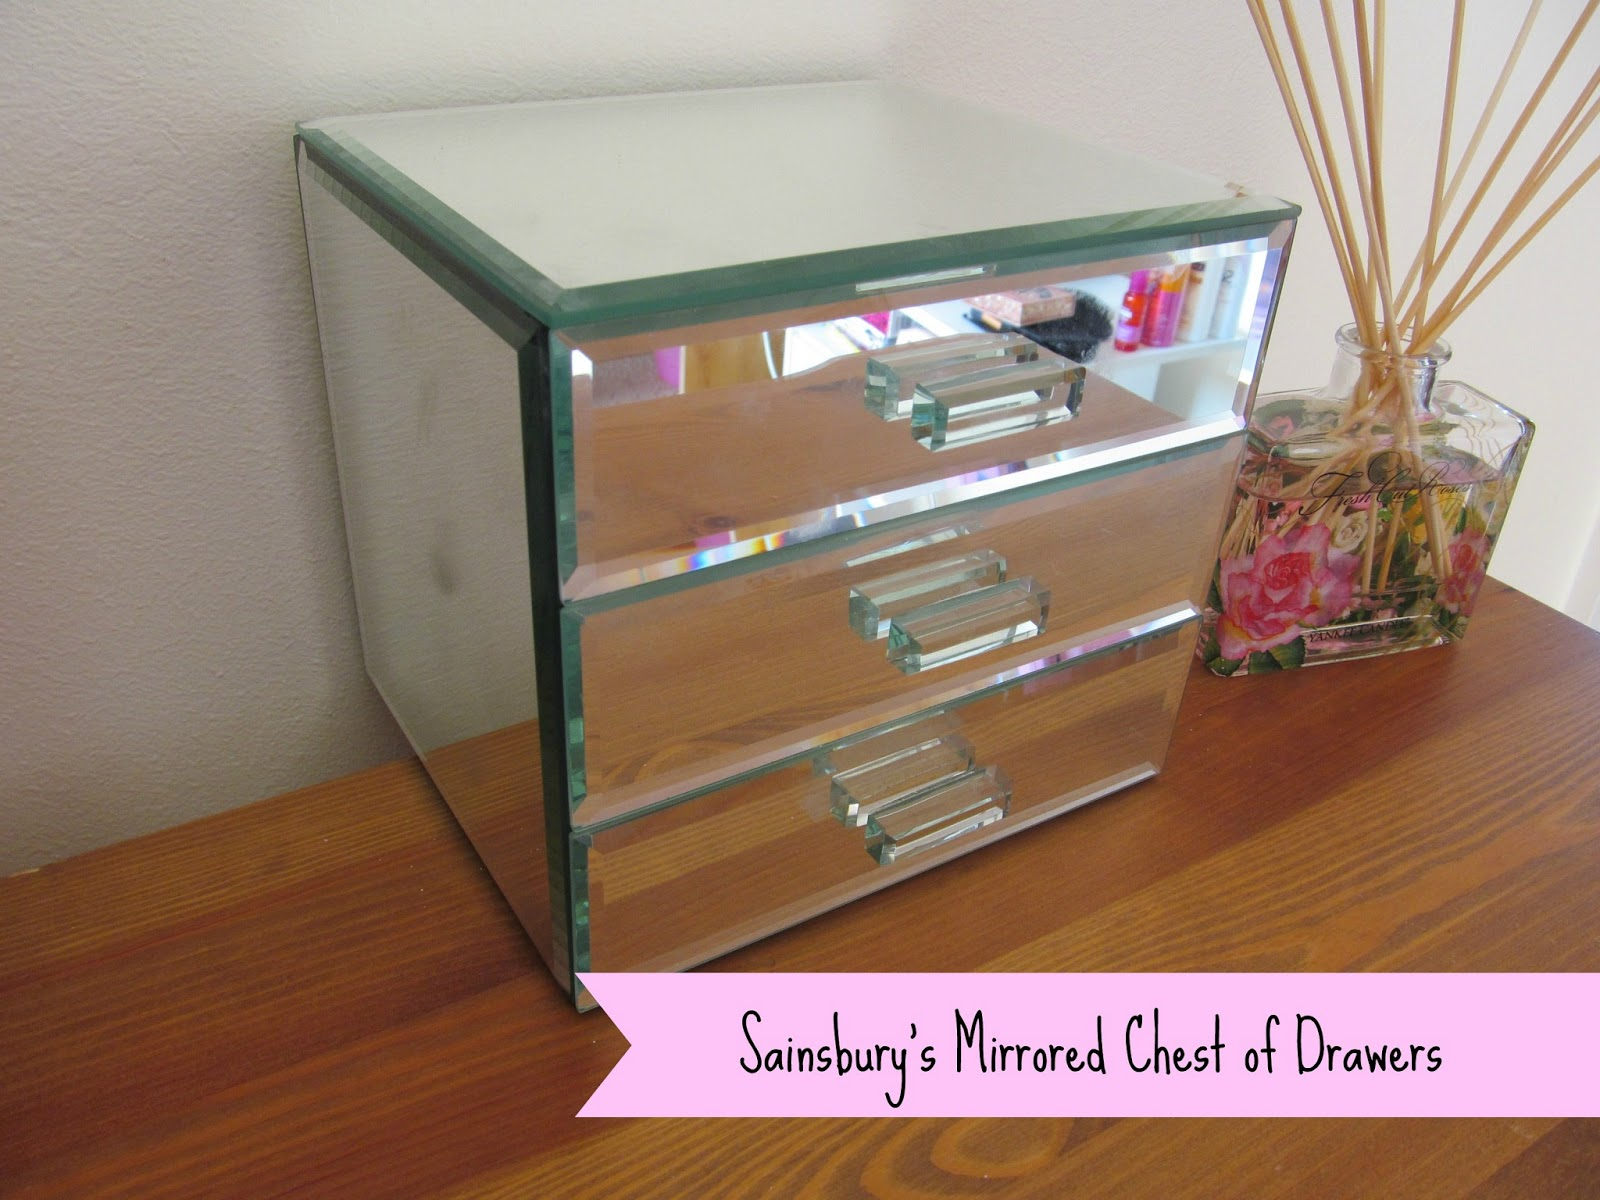 Chloesparkles: New Make-up Storage; Mirrored Drawers